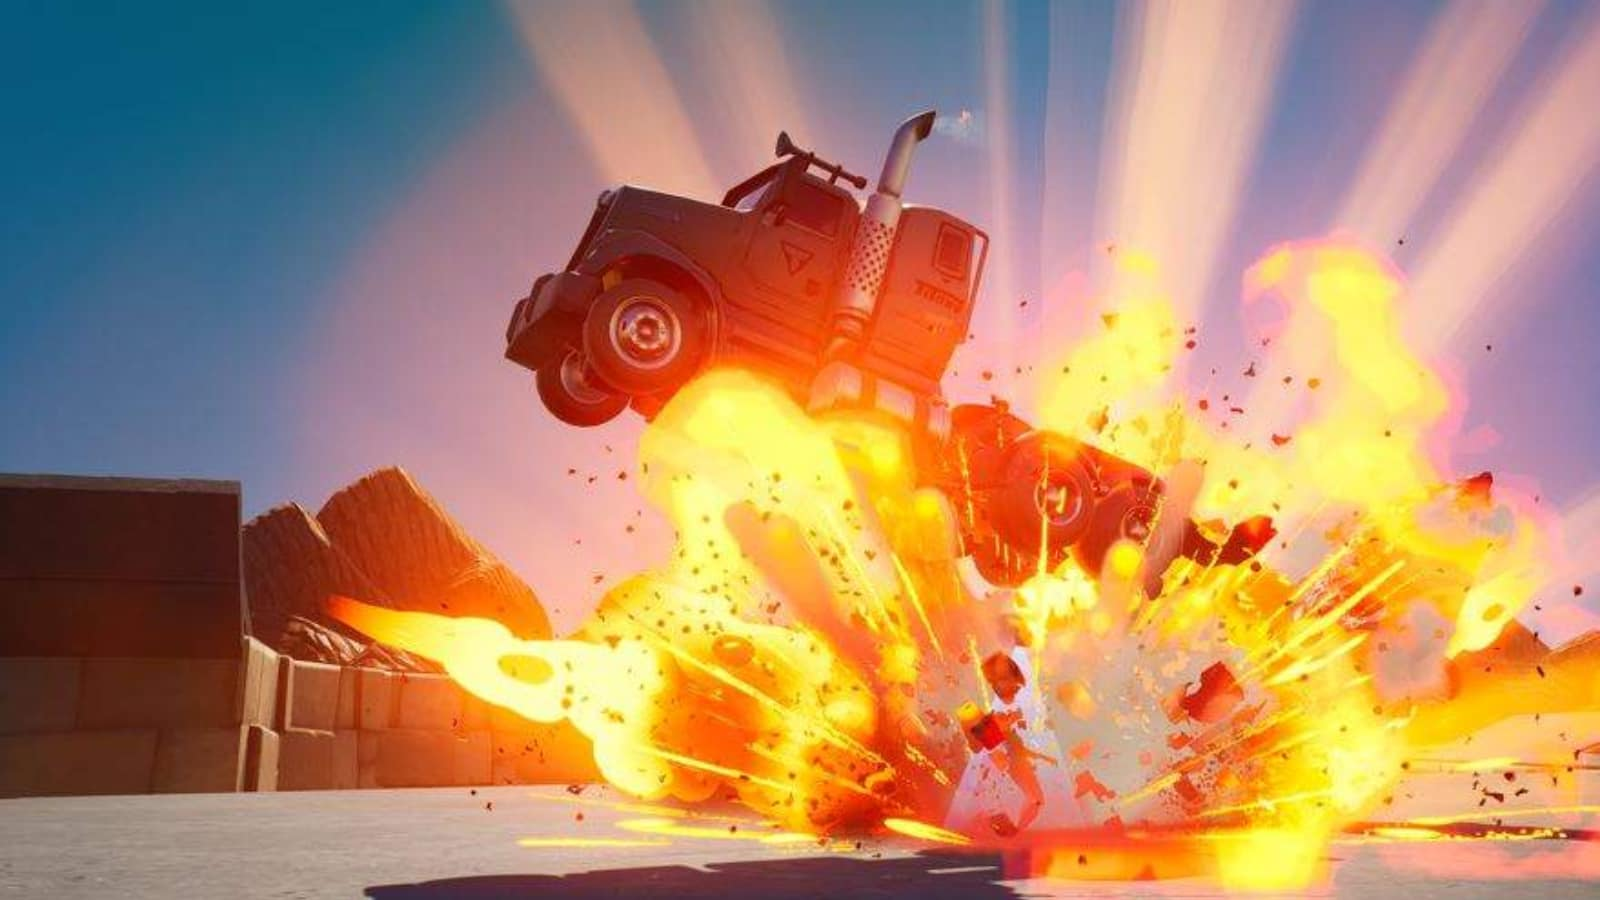 Fortnite Truck Pursuit: New Creative Map Code and All About it